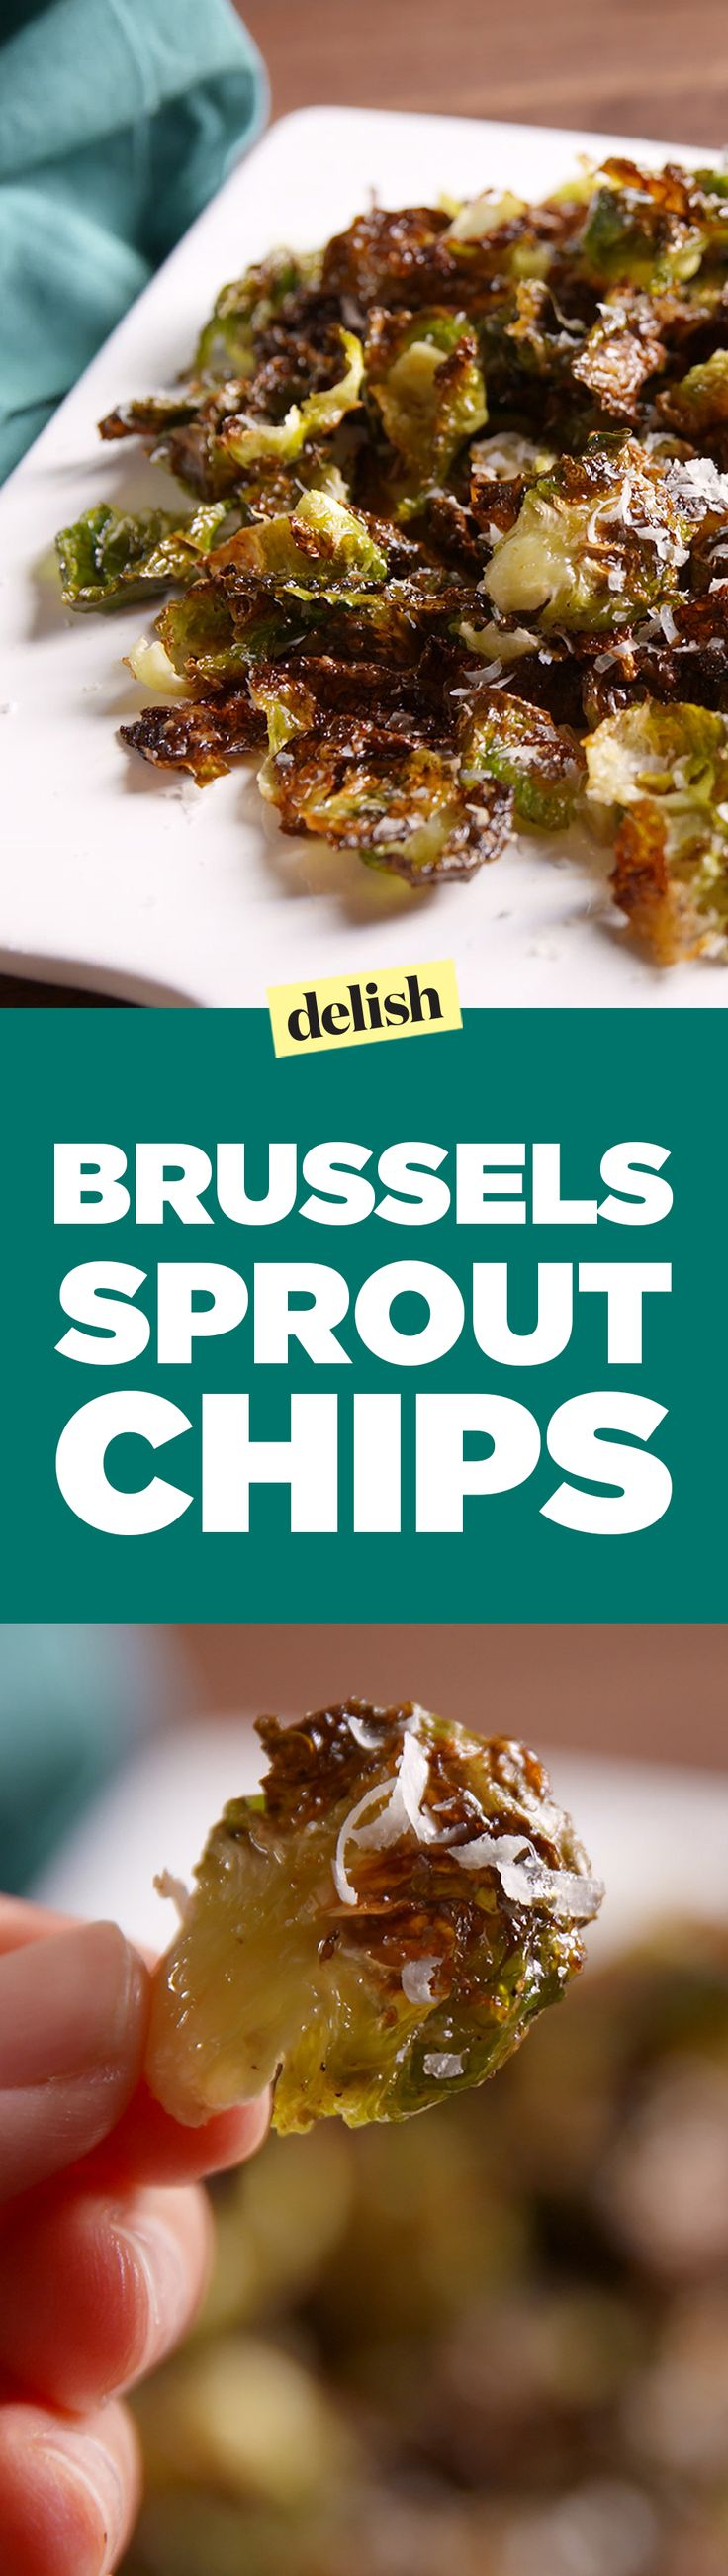 Brussels Sprout Chips will kick your potato chip cravings to the curb. Get the recipe on Delish.com.